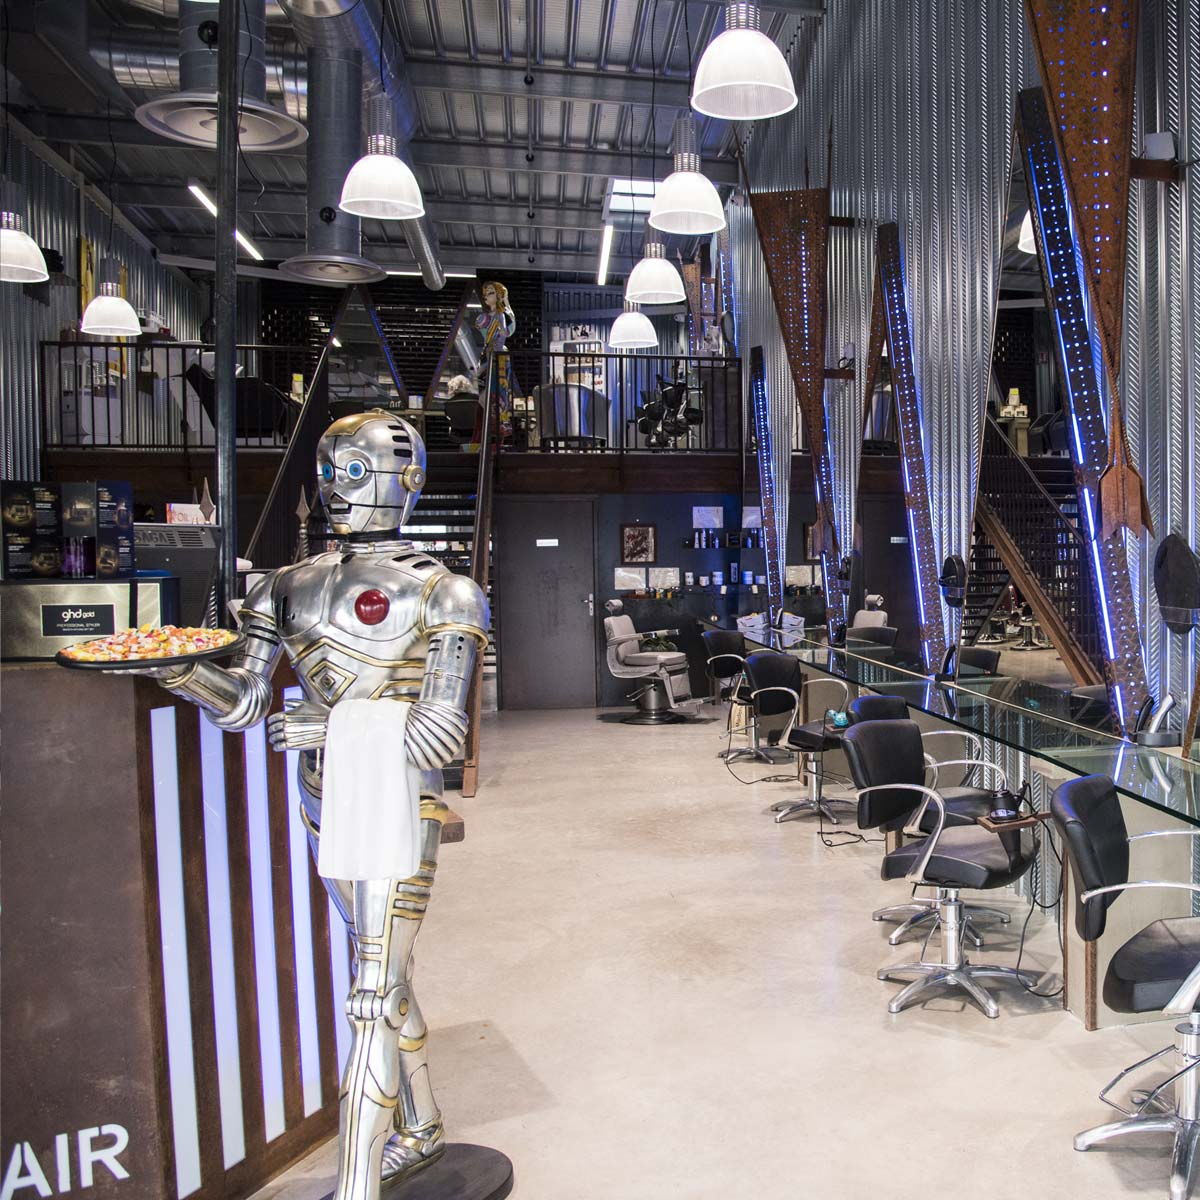 salon-de-coiffure-franchise-groupe-ppd-nouvel-hair-05